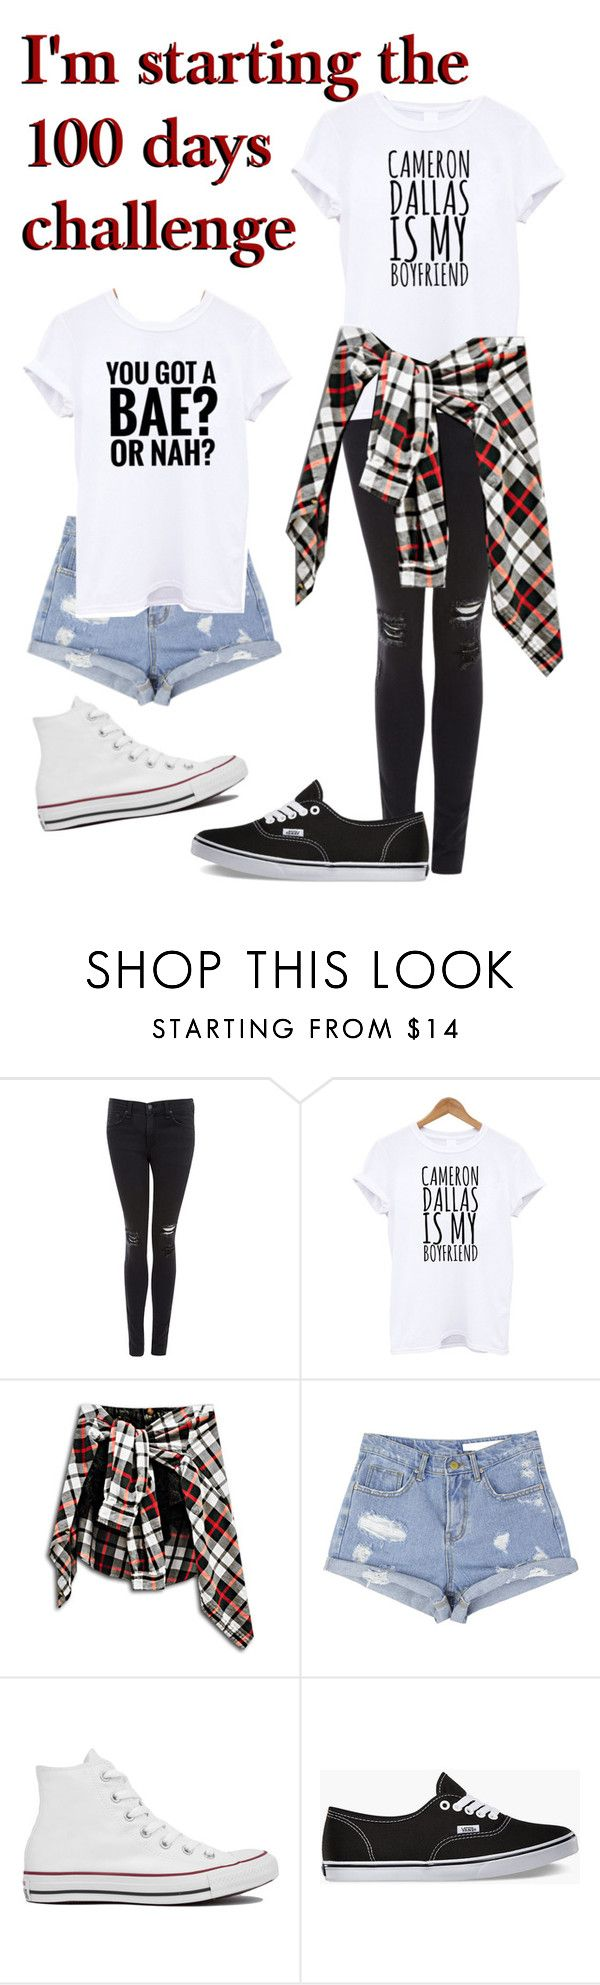 """""""Starting the 100 days challenge"""" by roxouu ❤ liked on Polyvore featuring rag & bone/JEAN, Converse, Vans, women's clothing, women, female, woman, misses and juniors"""